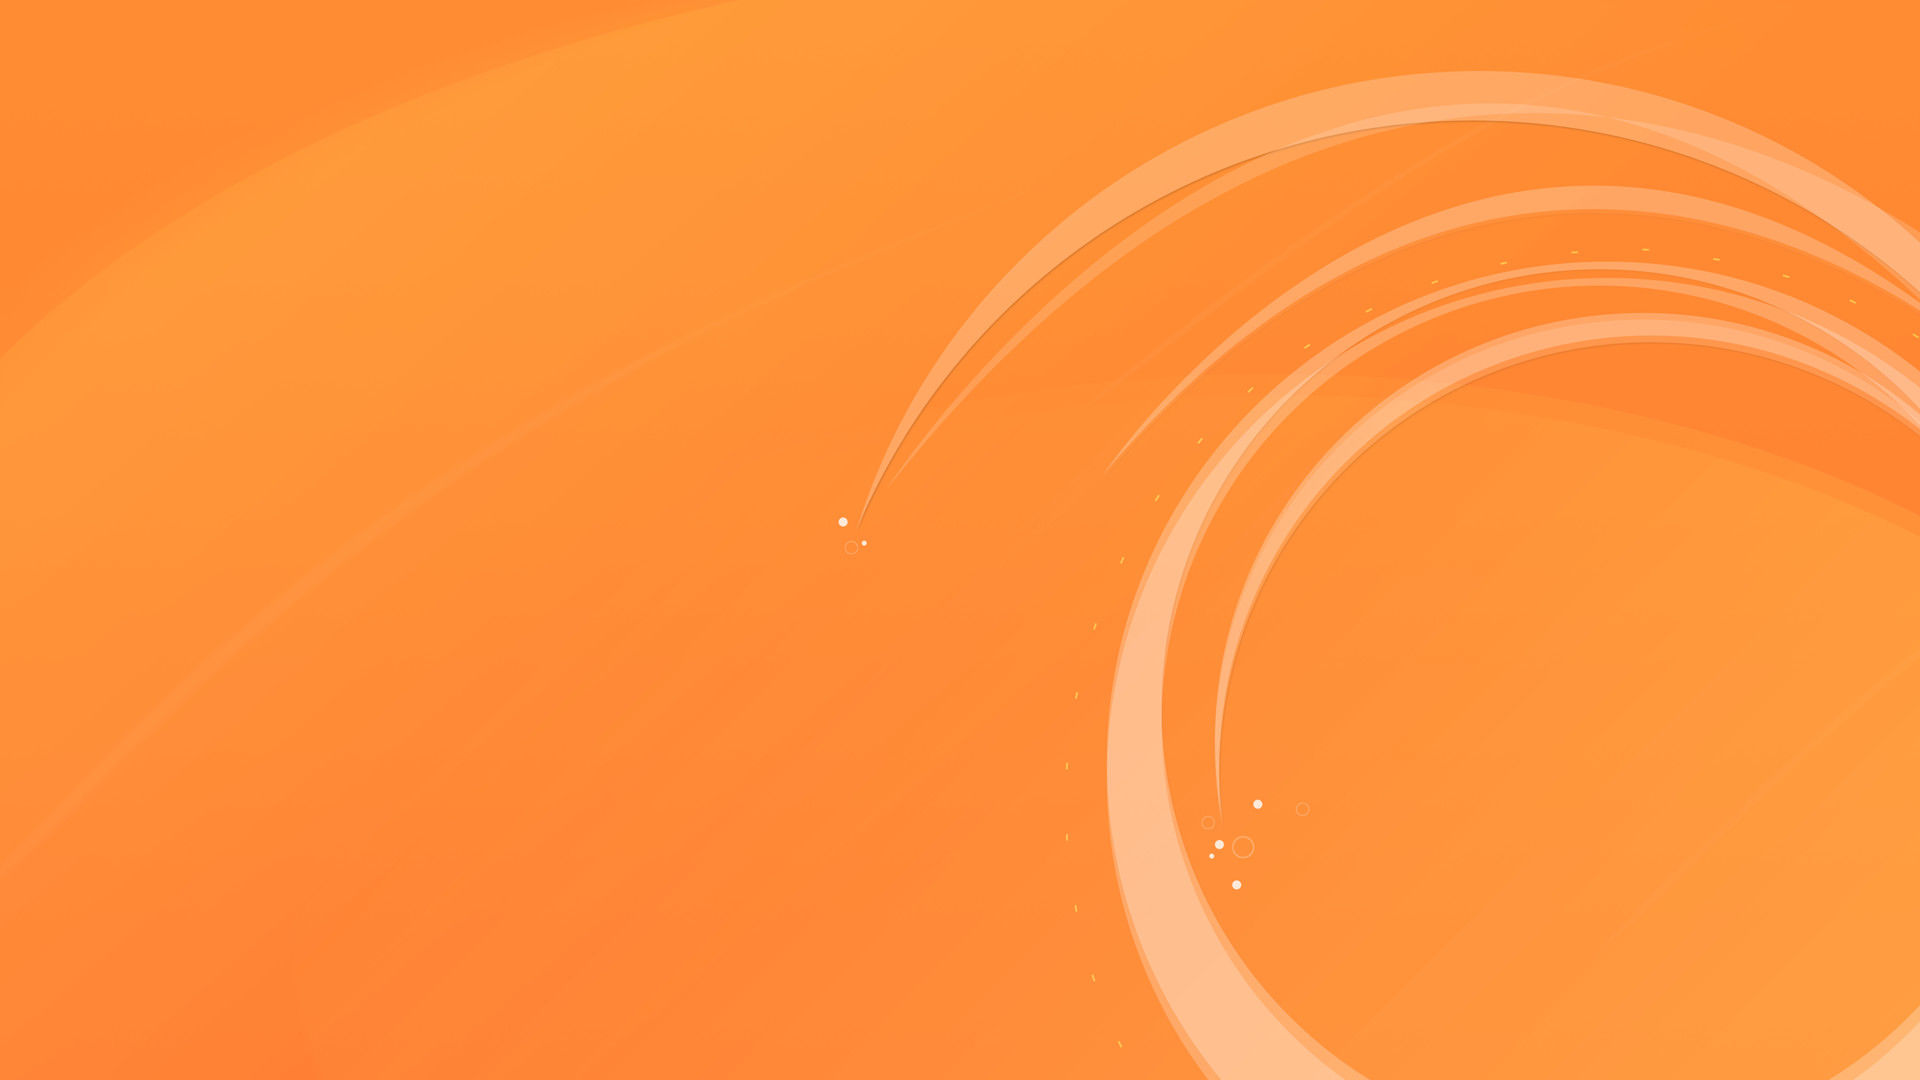 1920x1080 Circular Orange Wallpaper - HD Wallpapers